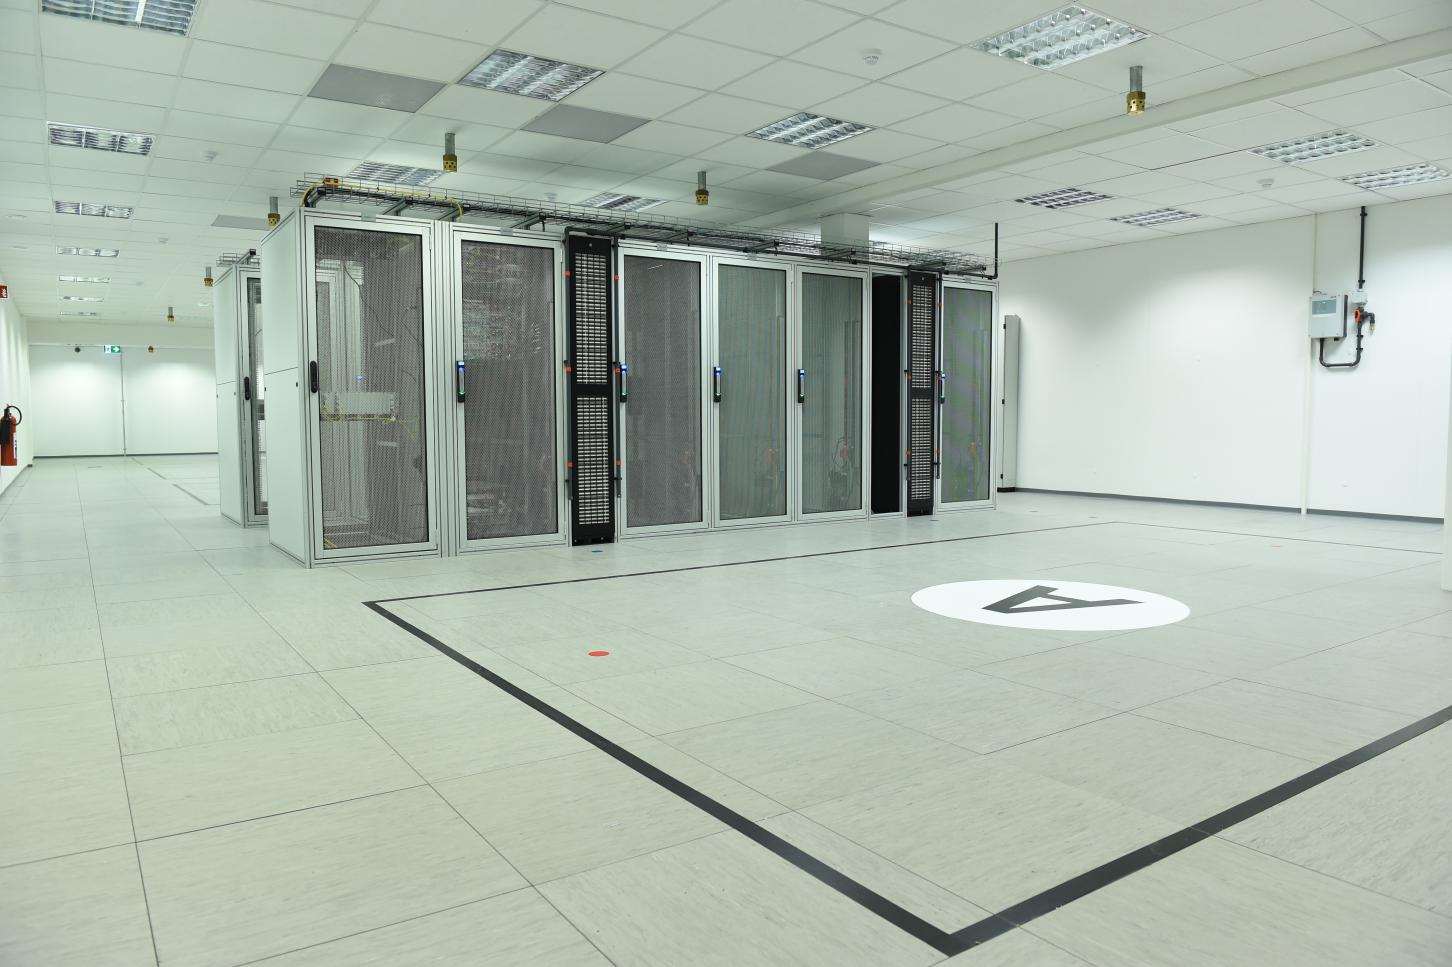 TeleData CENTER - Cold Aisle Containment